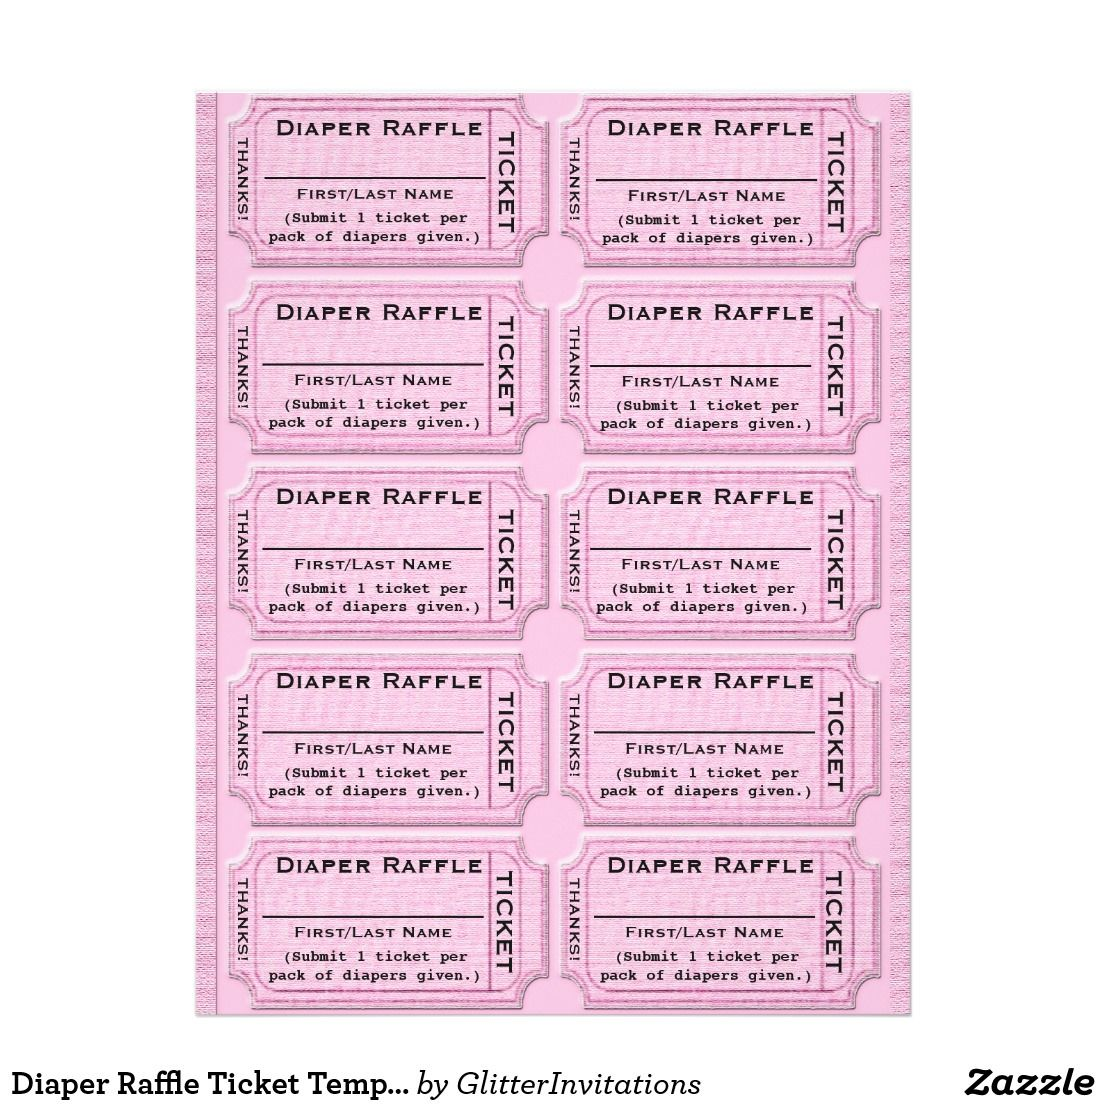 Diaper Raffle Ticket Template Flyer  Ticket Template Raffle